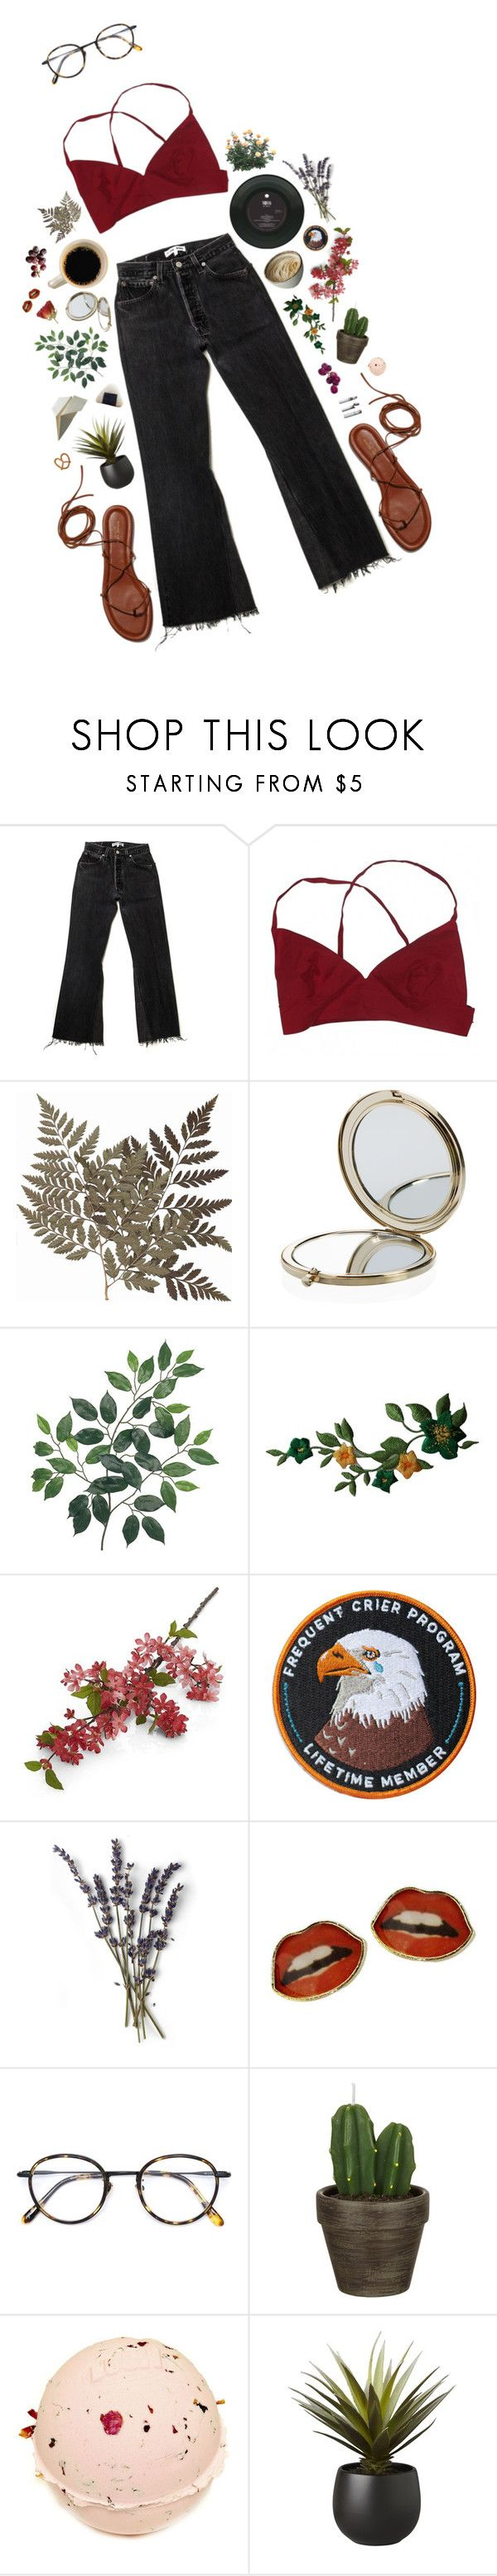 """""""7:56 PM"""" by dear-scone ❤ liked on Polyvore featuring Prada, Henri Bendel, Disney, Crate and Barrel, Stay Home Club, Frency & Mercury, John Lewis and CB2"""